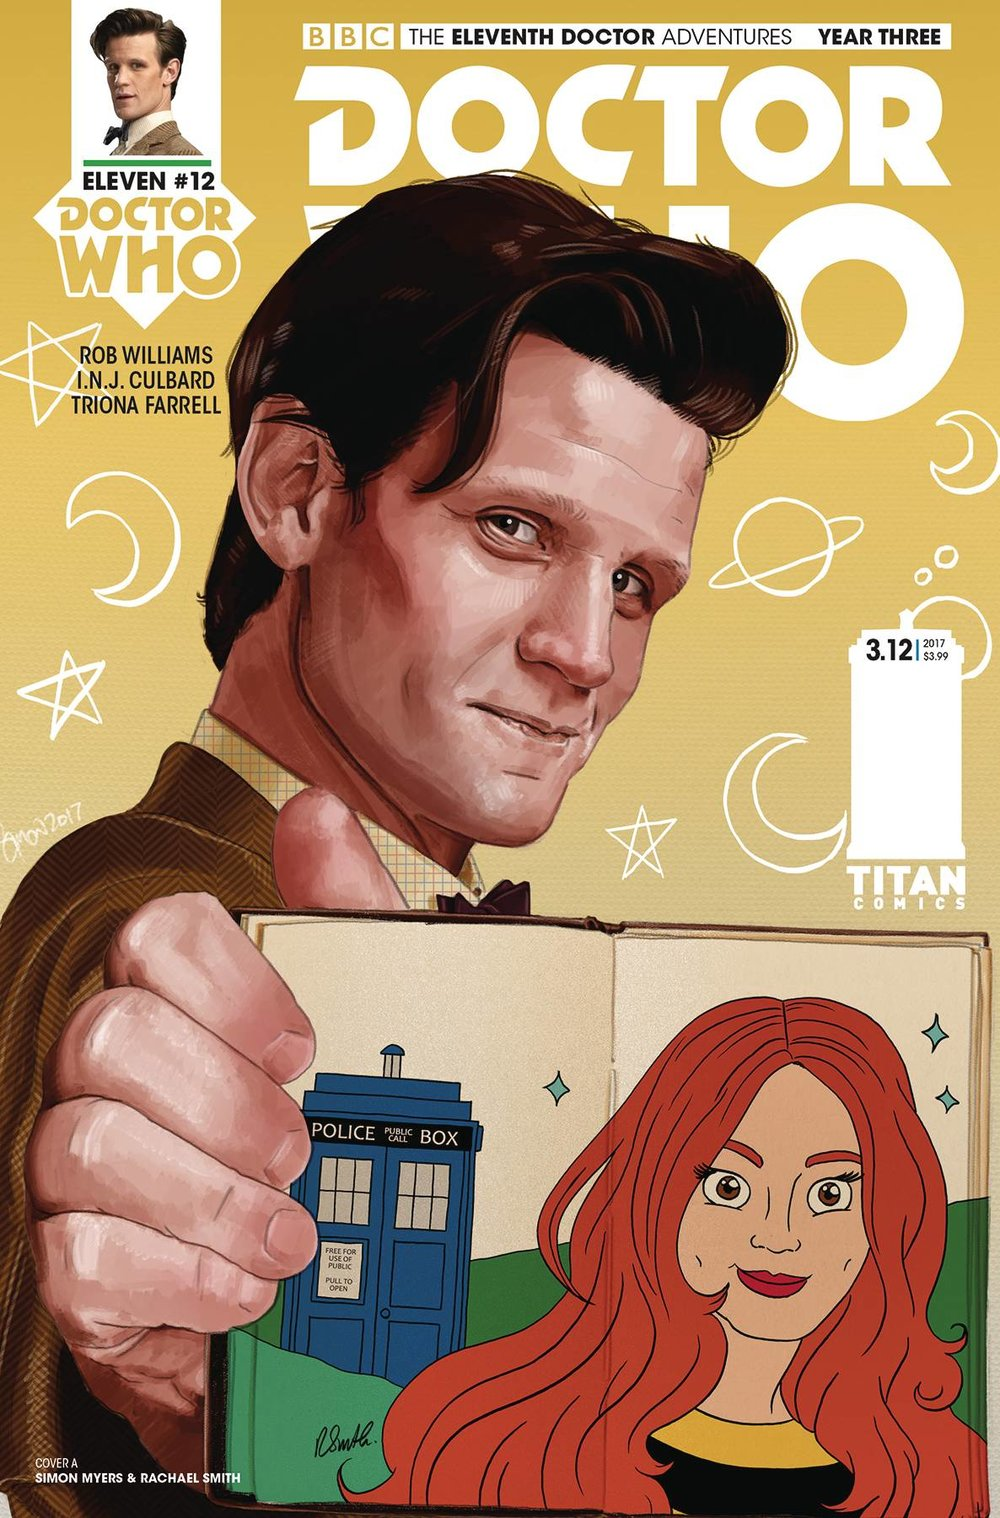 DOCTOR WHO 11TH YEAR THREE 12 CVR A MYERS & SMITH.jpg